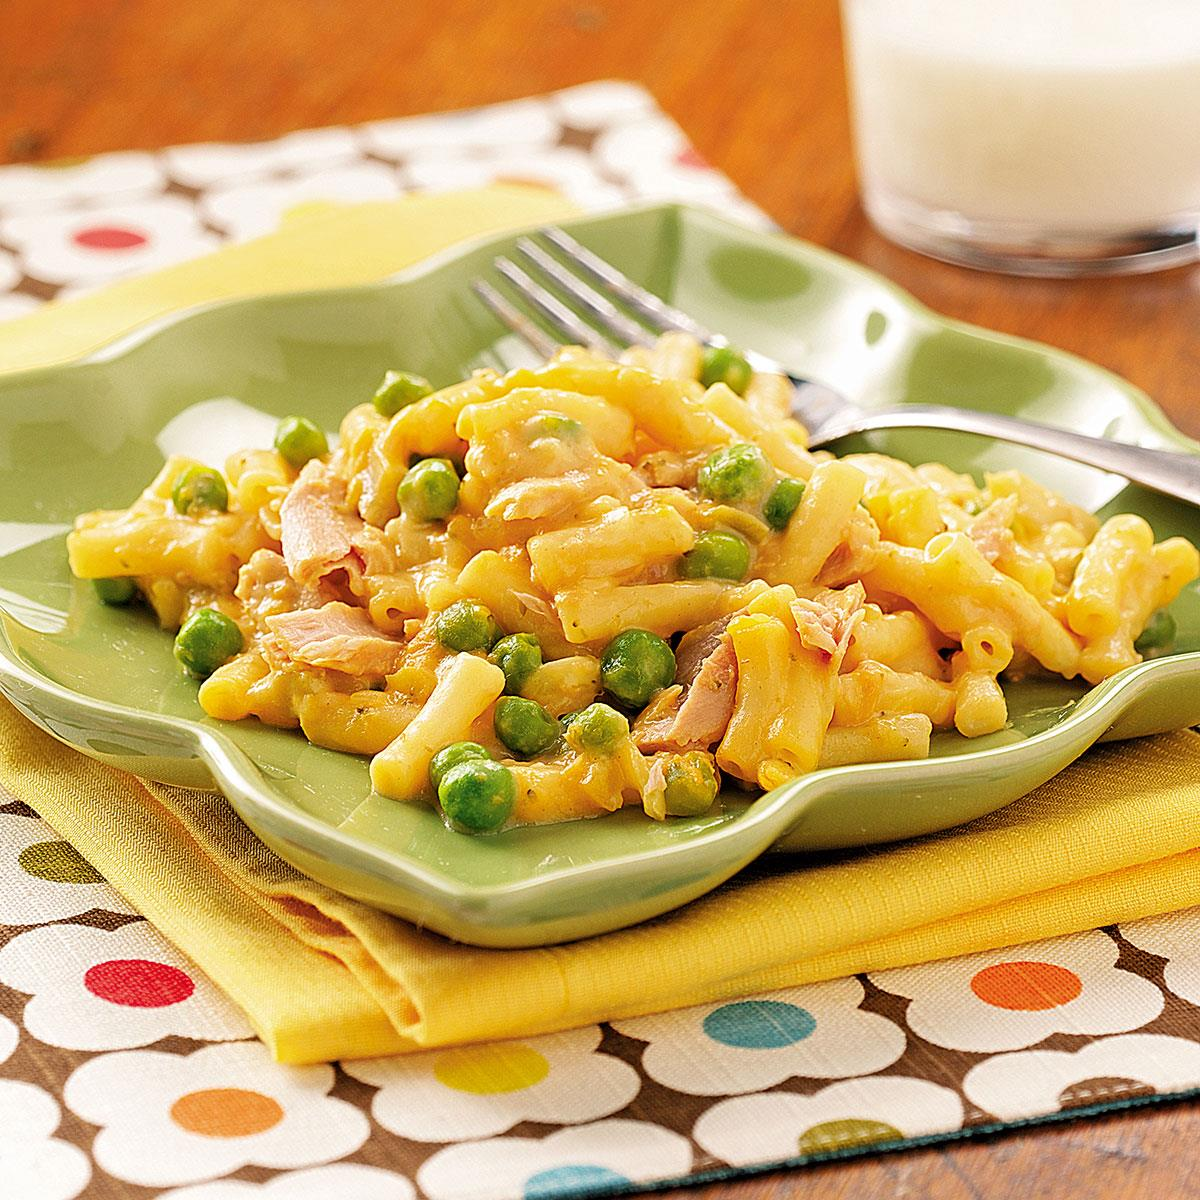 Cheesy-Tuna-Mac_exps19669_BFSM1754022D01